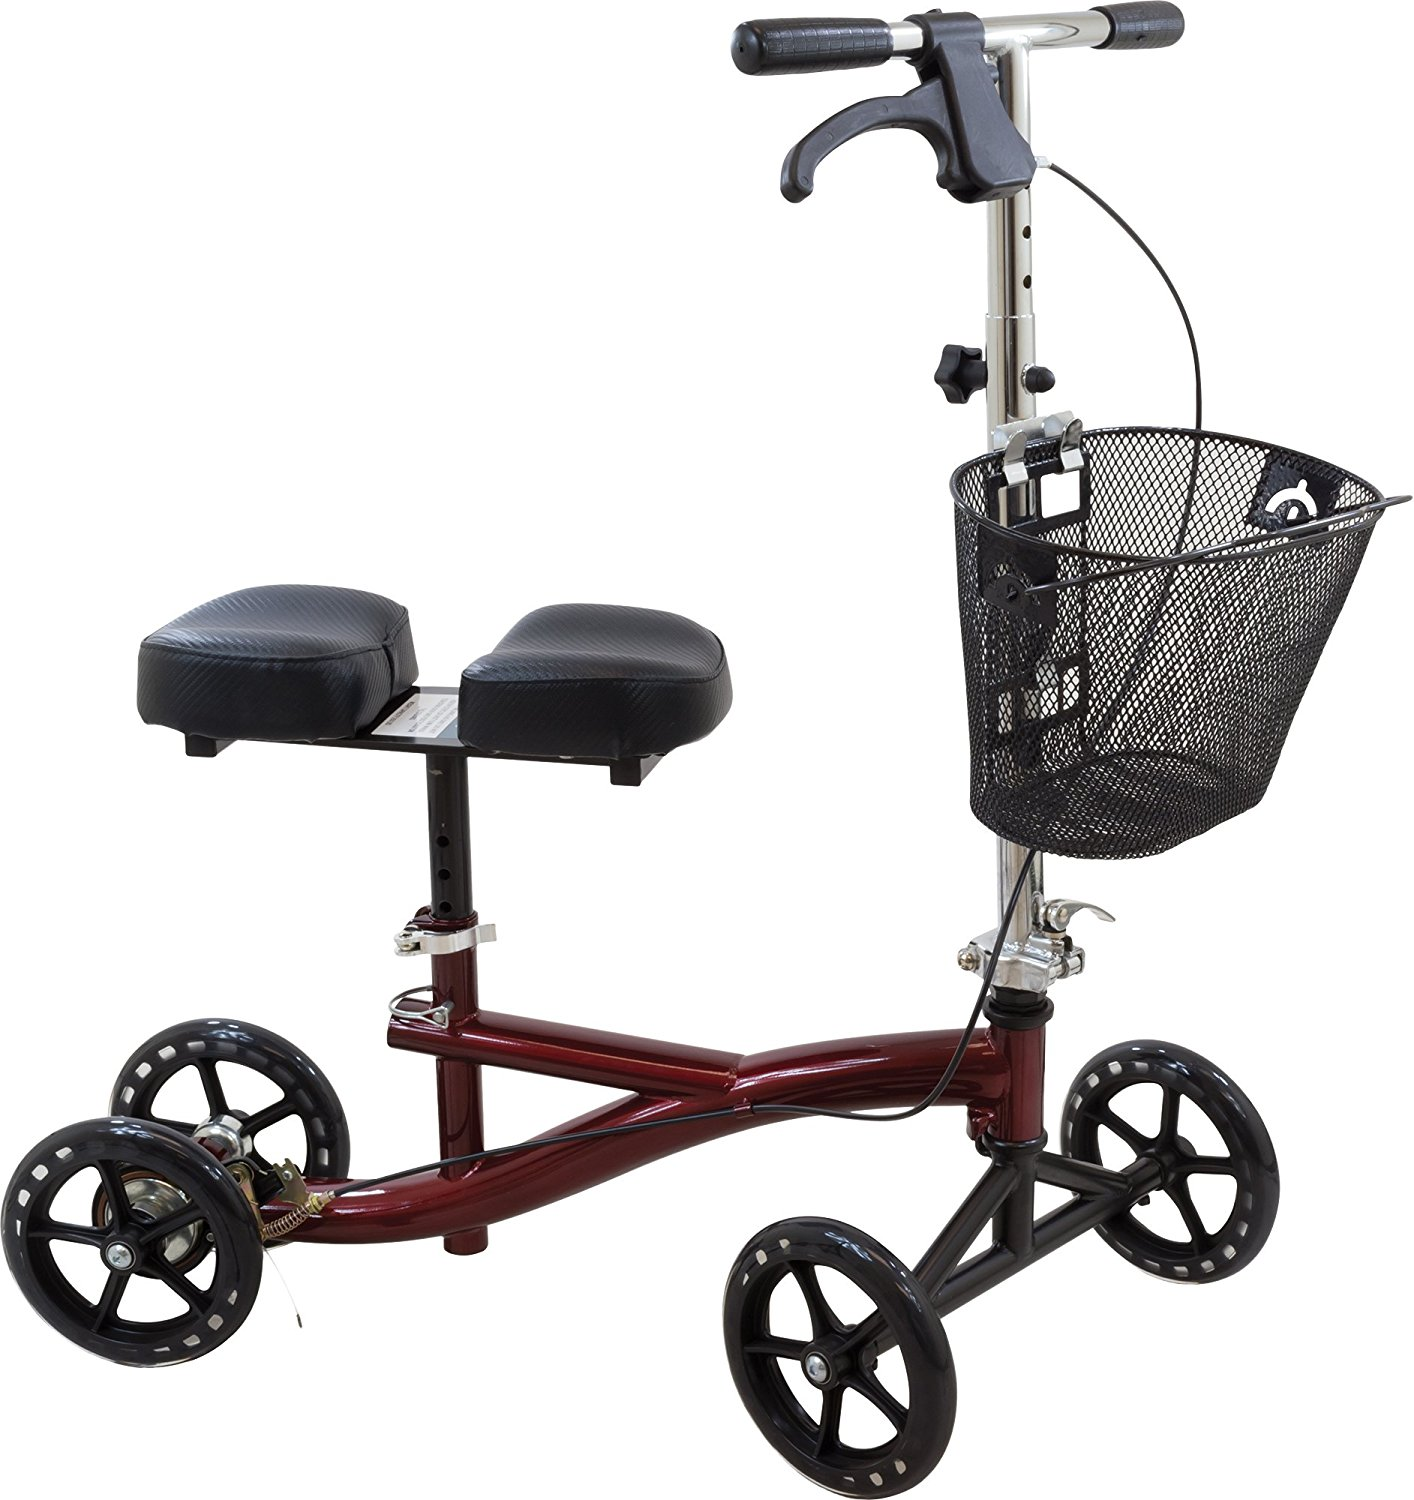 Roscoe Medical Knee Scooter